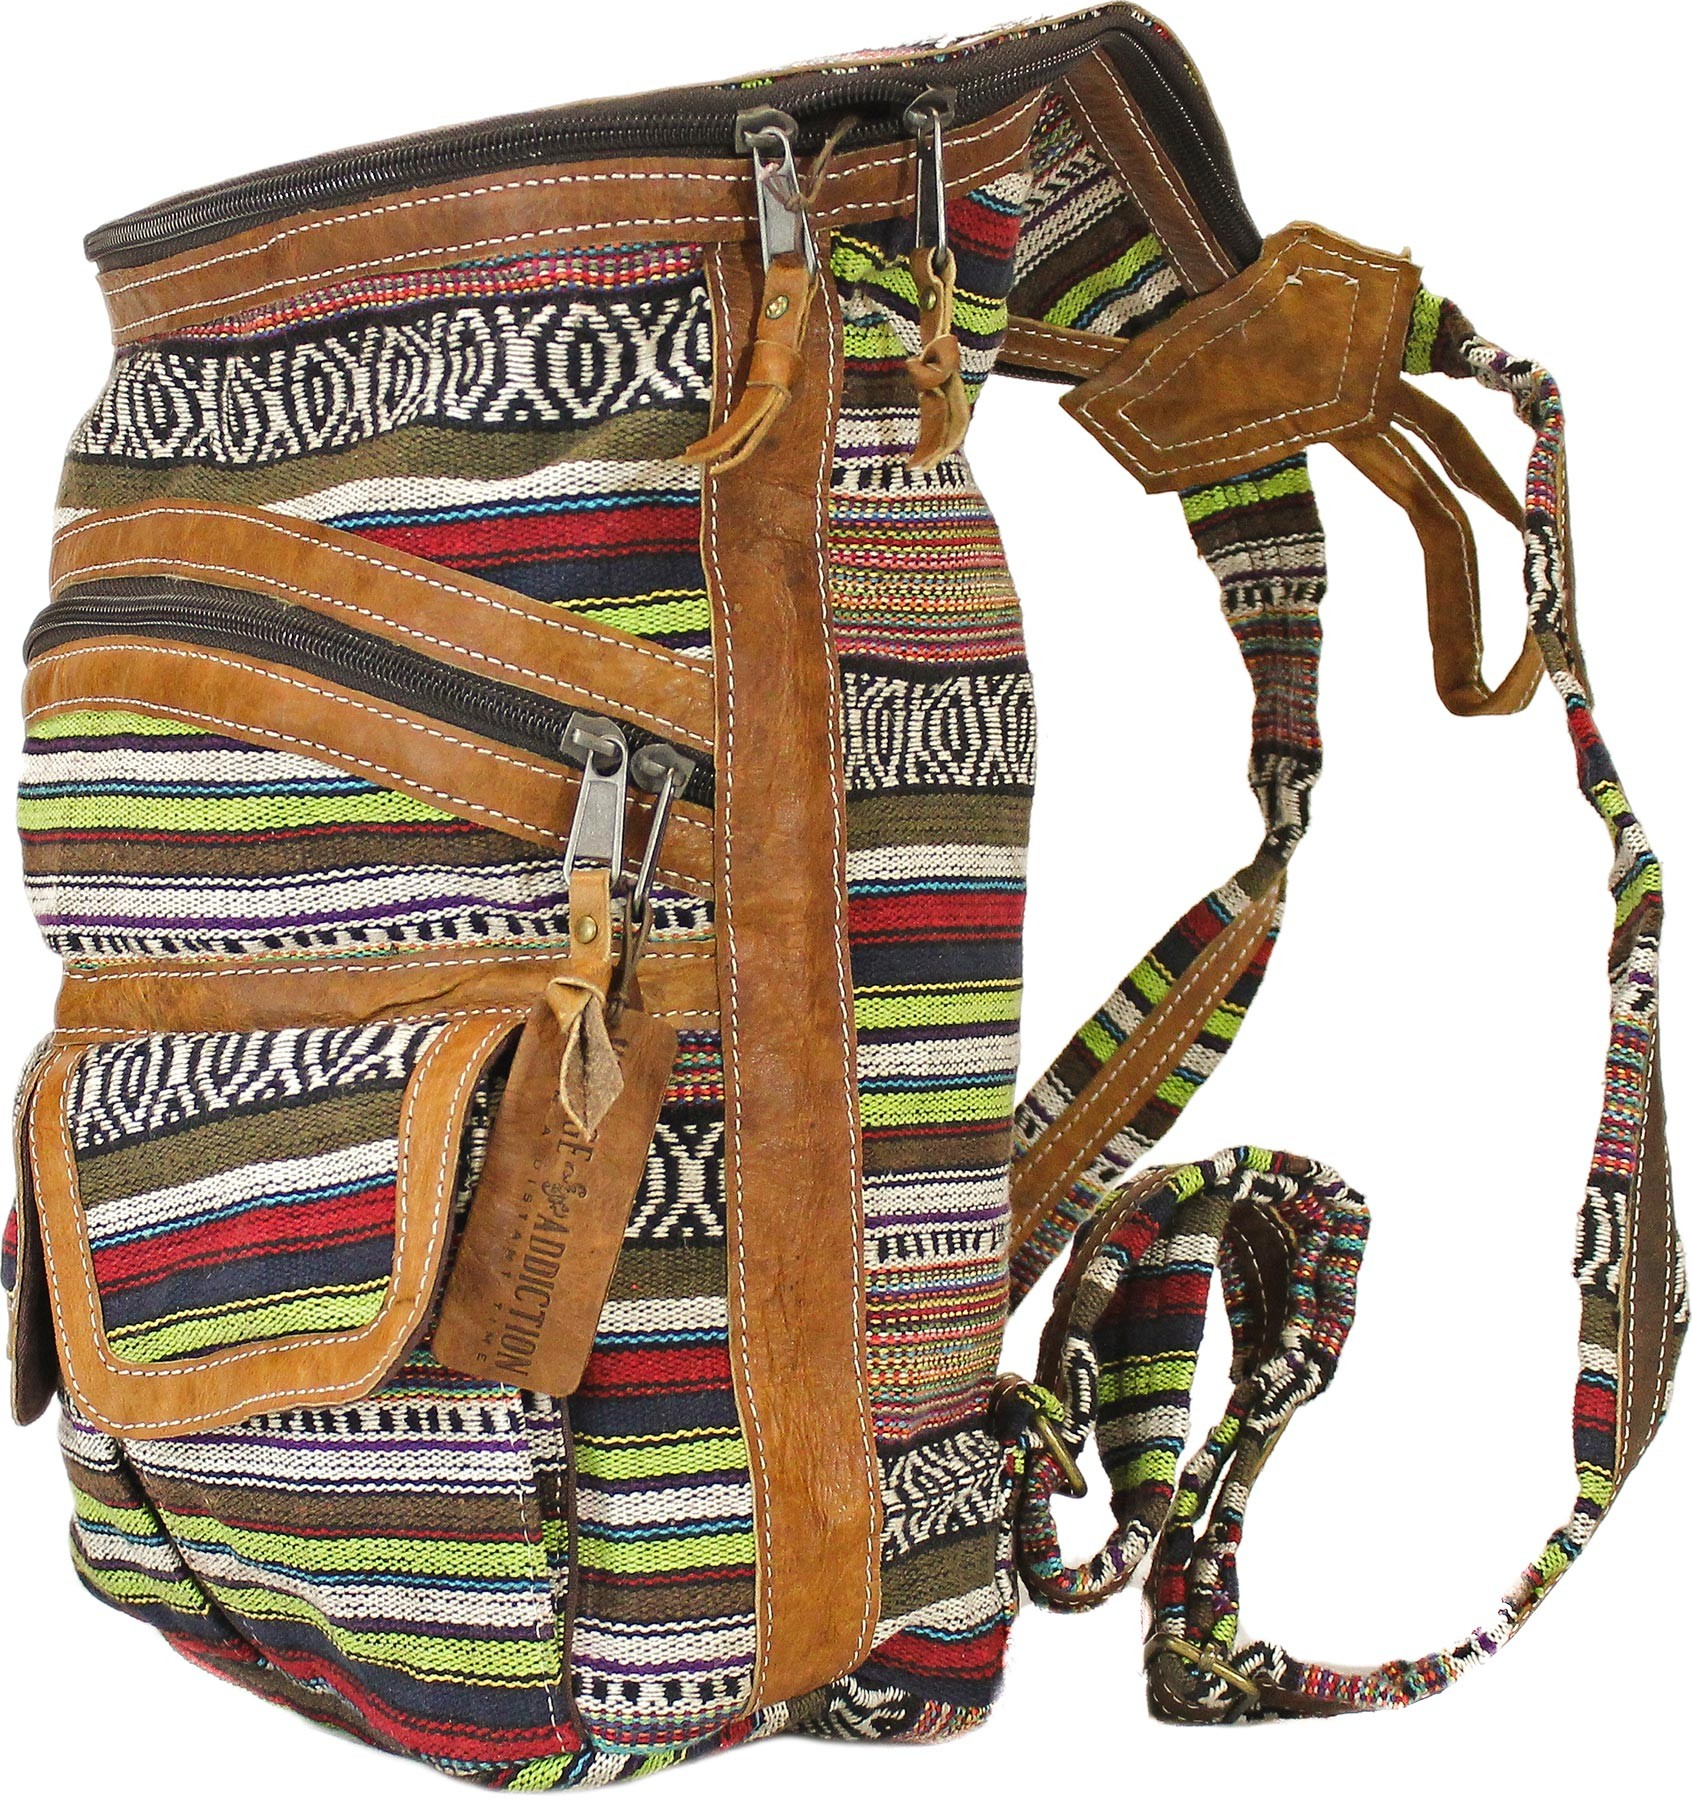 Wanderlust Citrus Backpack Bags Accessories